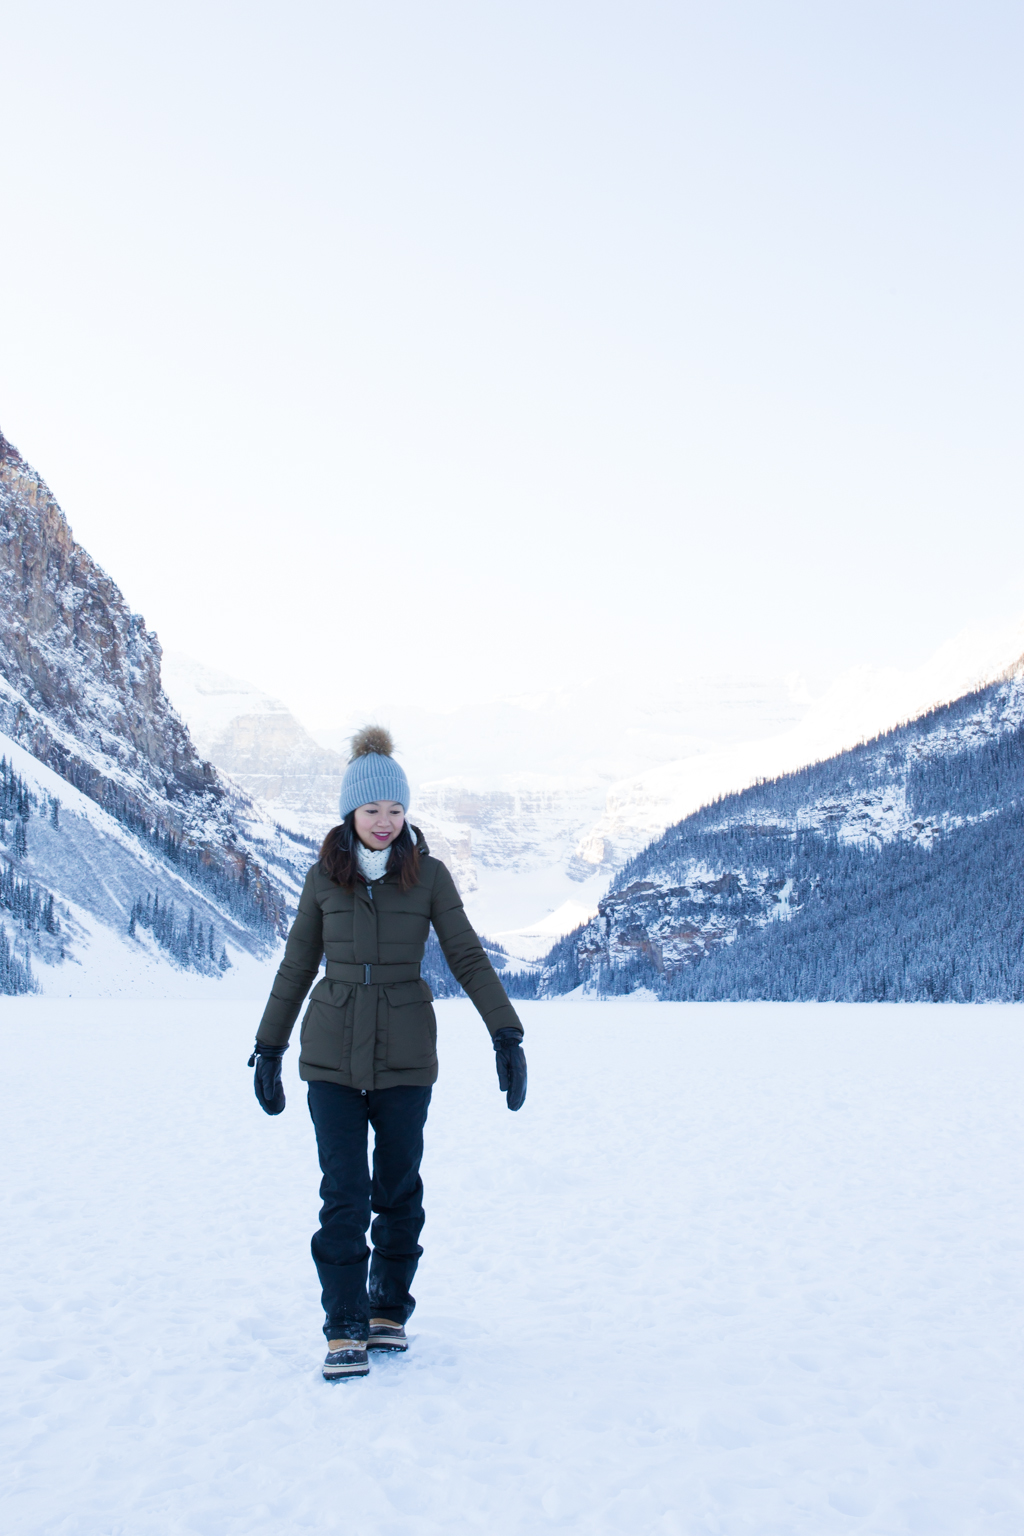 Startwithblack Postcards from Lake Louise in Winter 2-12